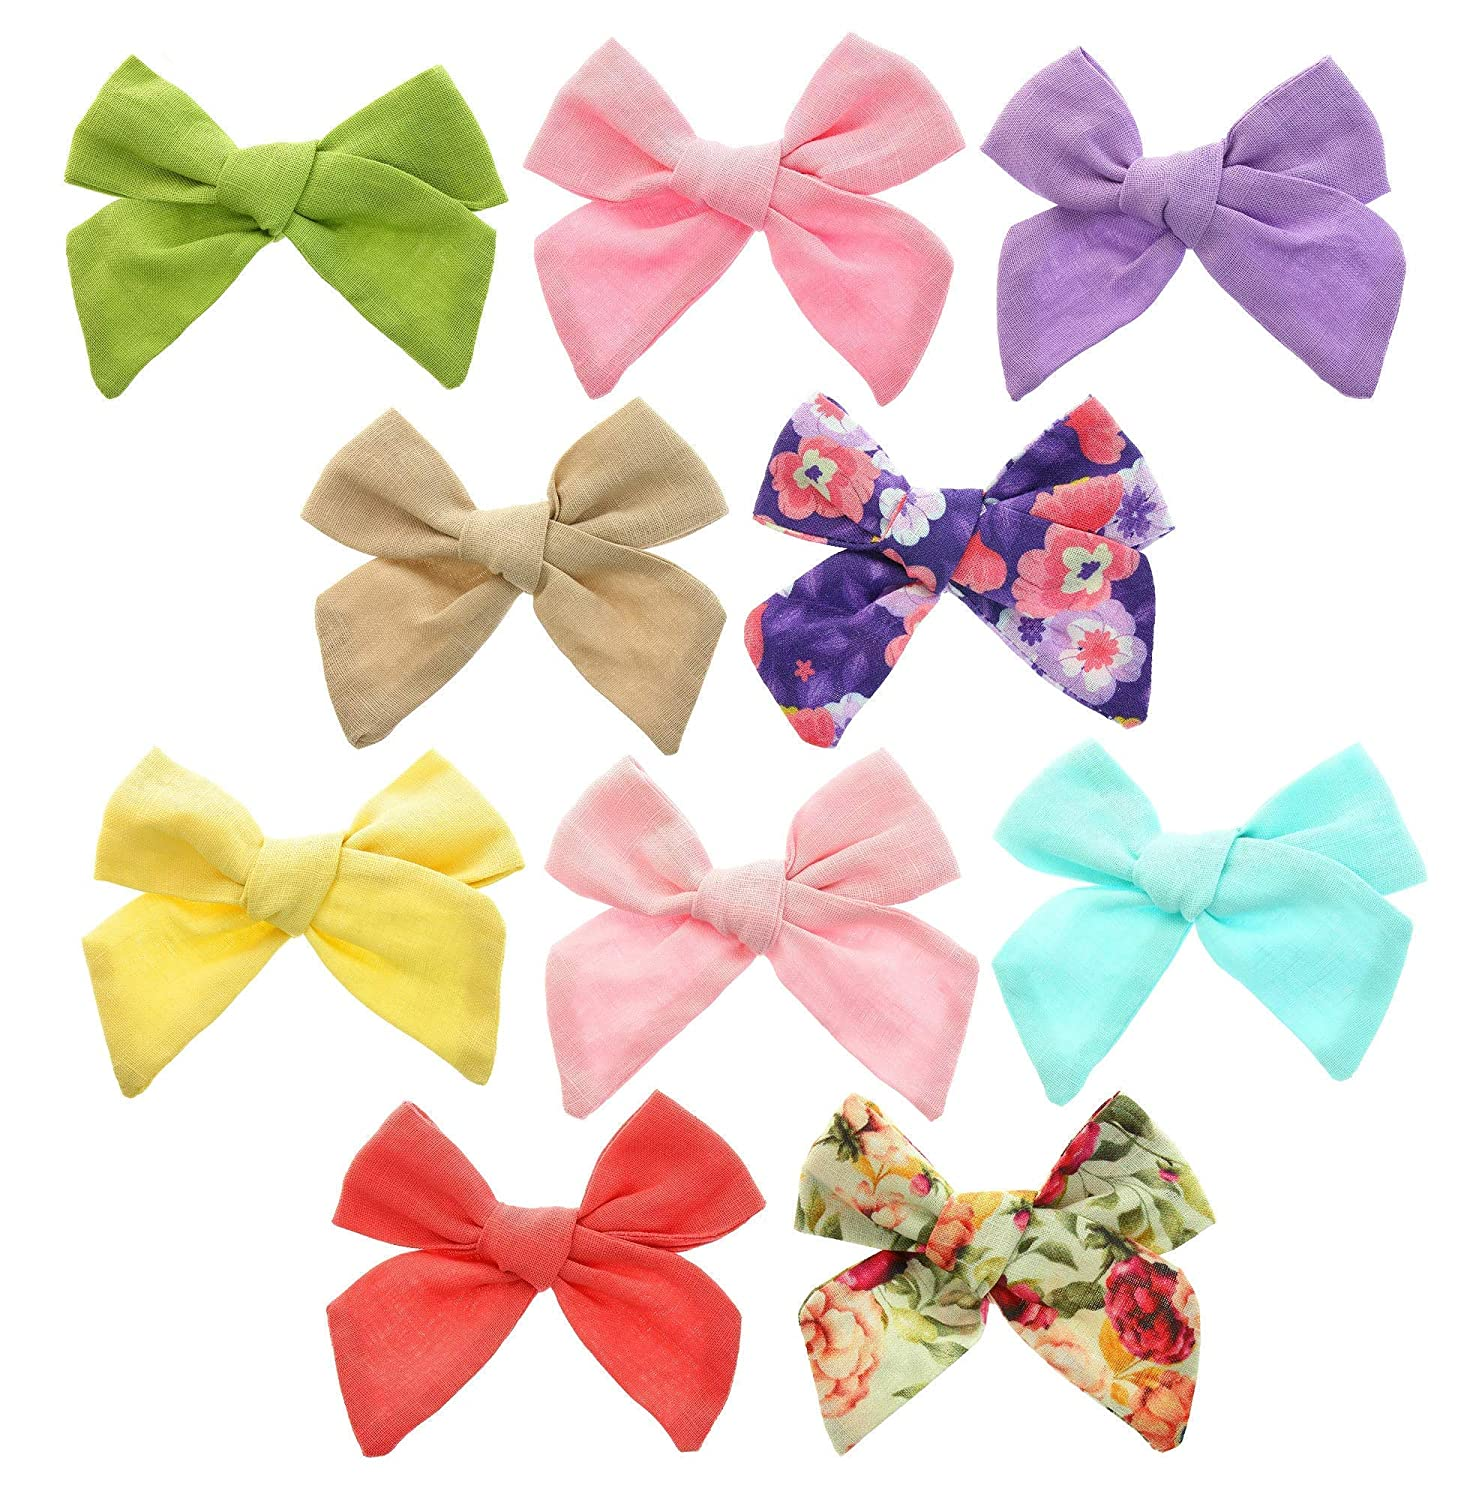 Baby Girls Hair Bows Clips Barrettes Accessory for Infant Toddlers Kids in Multi-Colored Bow Alligator Accessories Little Toddler Teens Children (Linen)